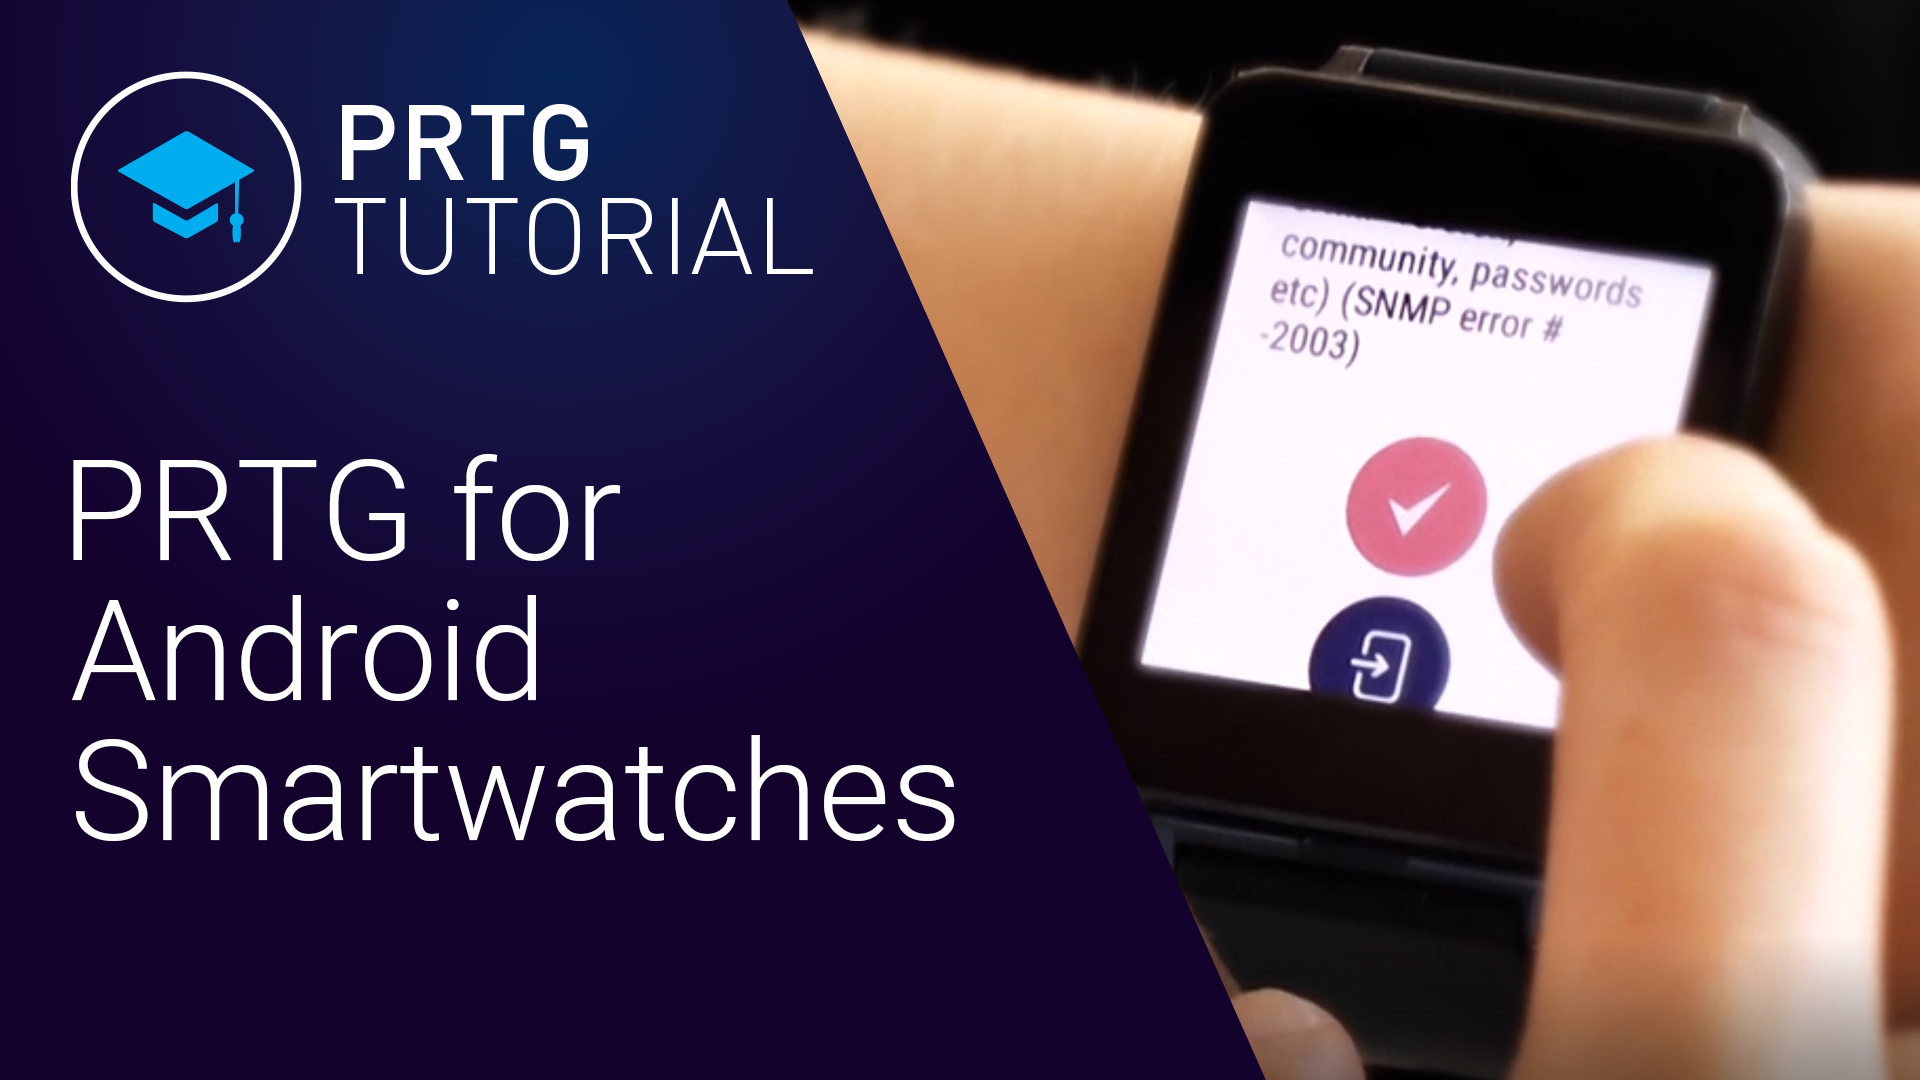 PRTG for Android - Watch App (Videos)